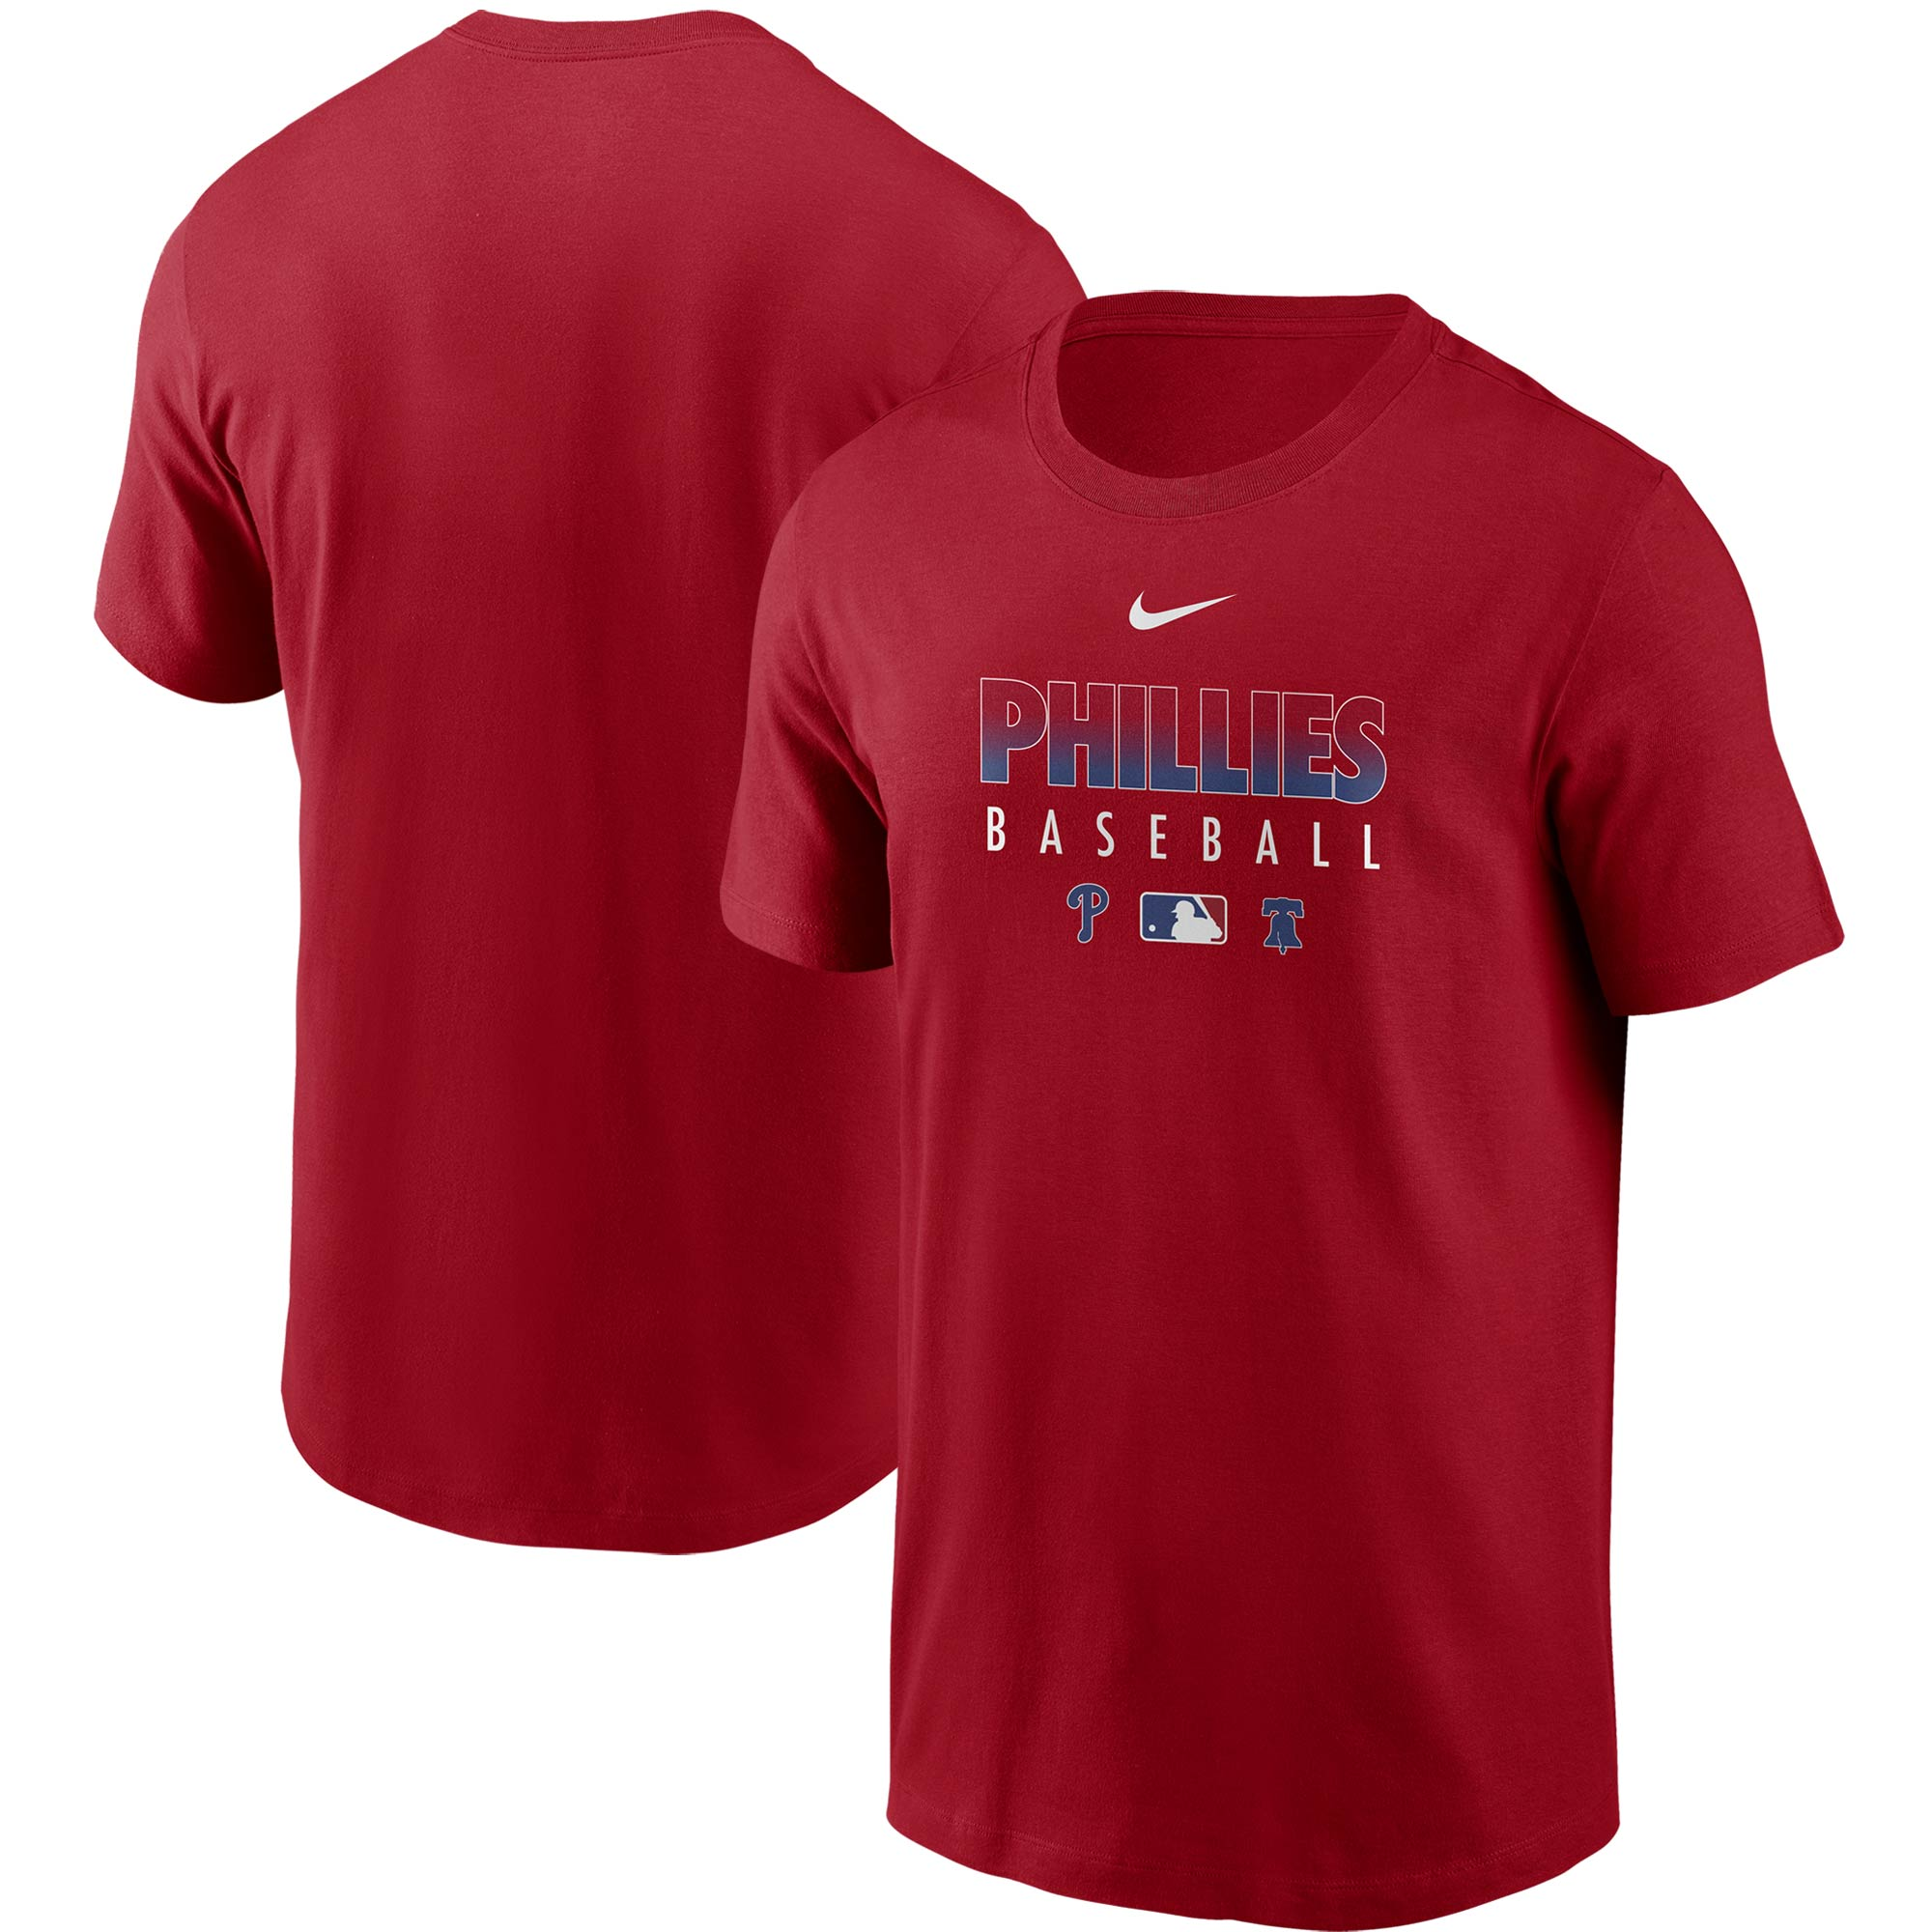 Philadelphia Phillies Nike Authentic Collection Team Performance T-Shirt - Red